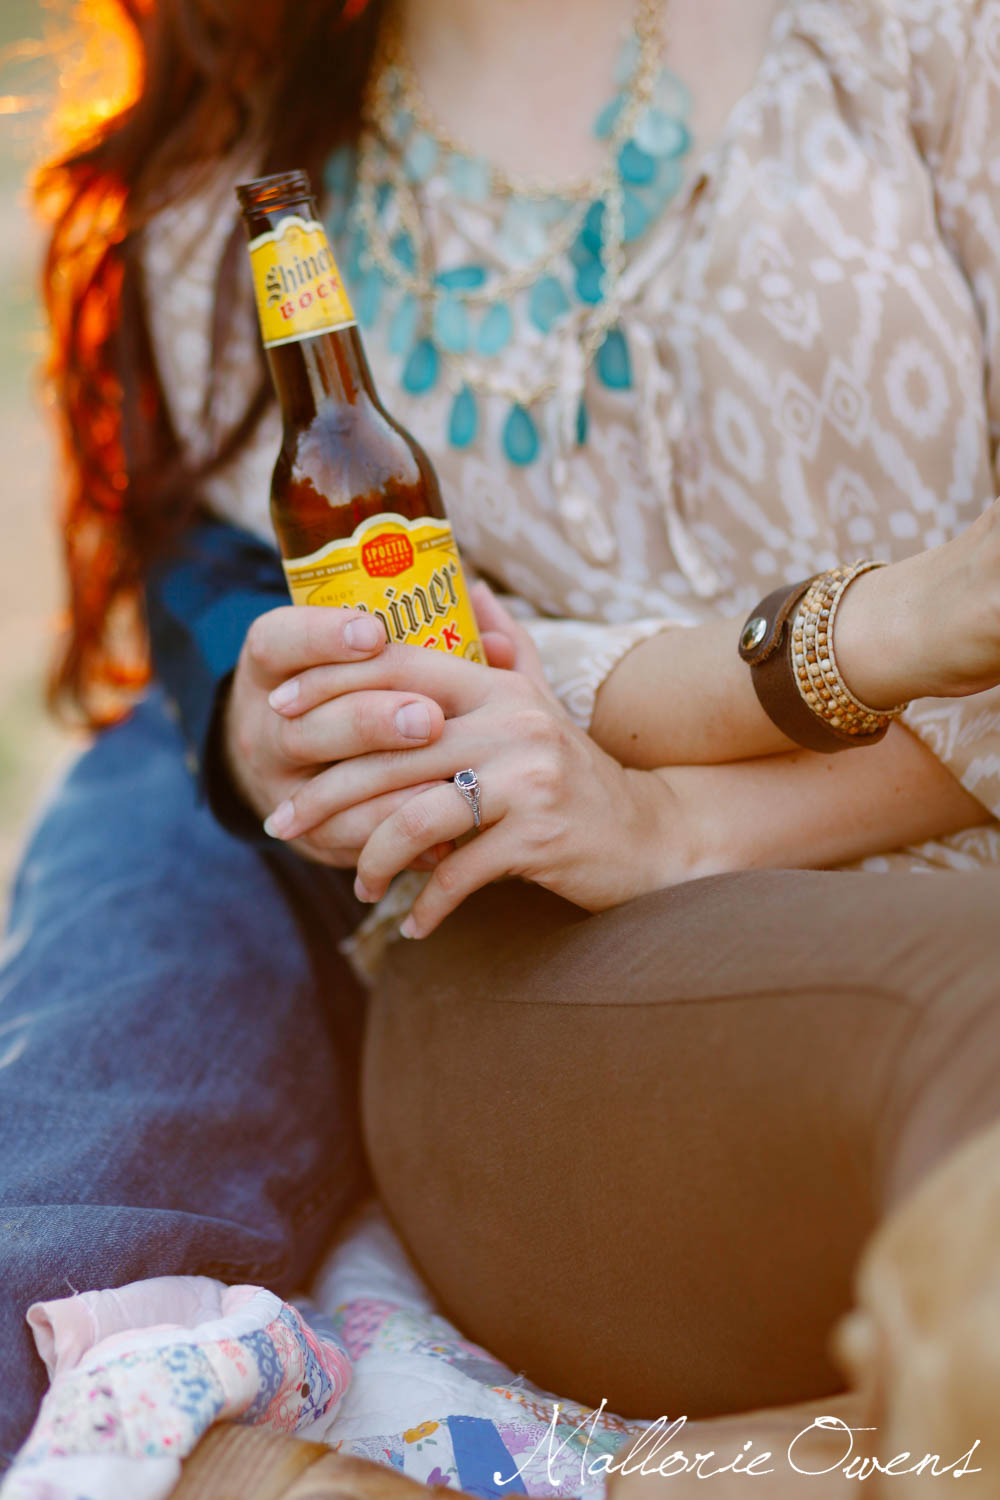 Shiner Beer Engagement Photography | MALLORIE OWENS